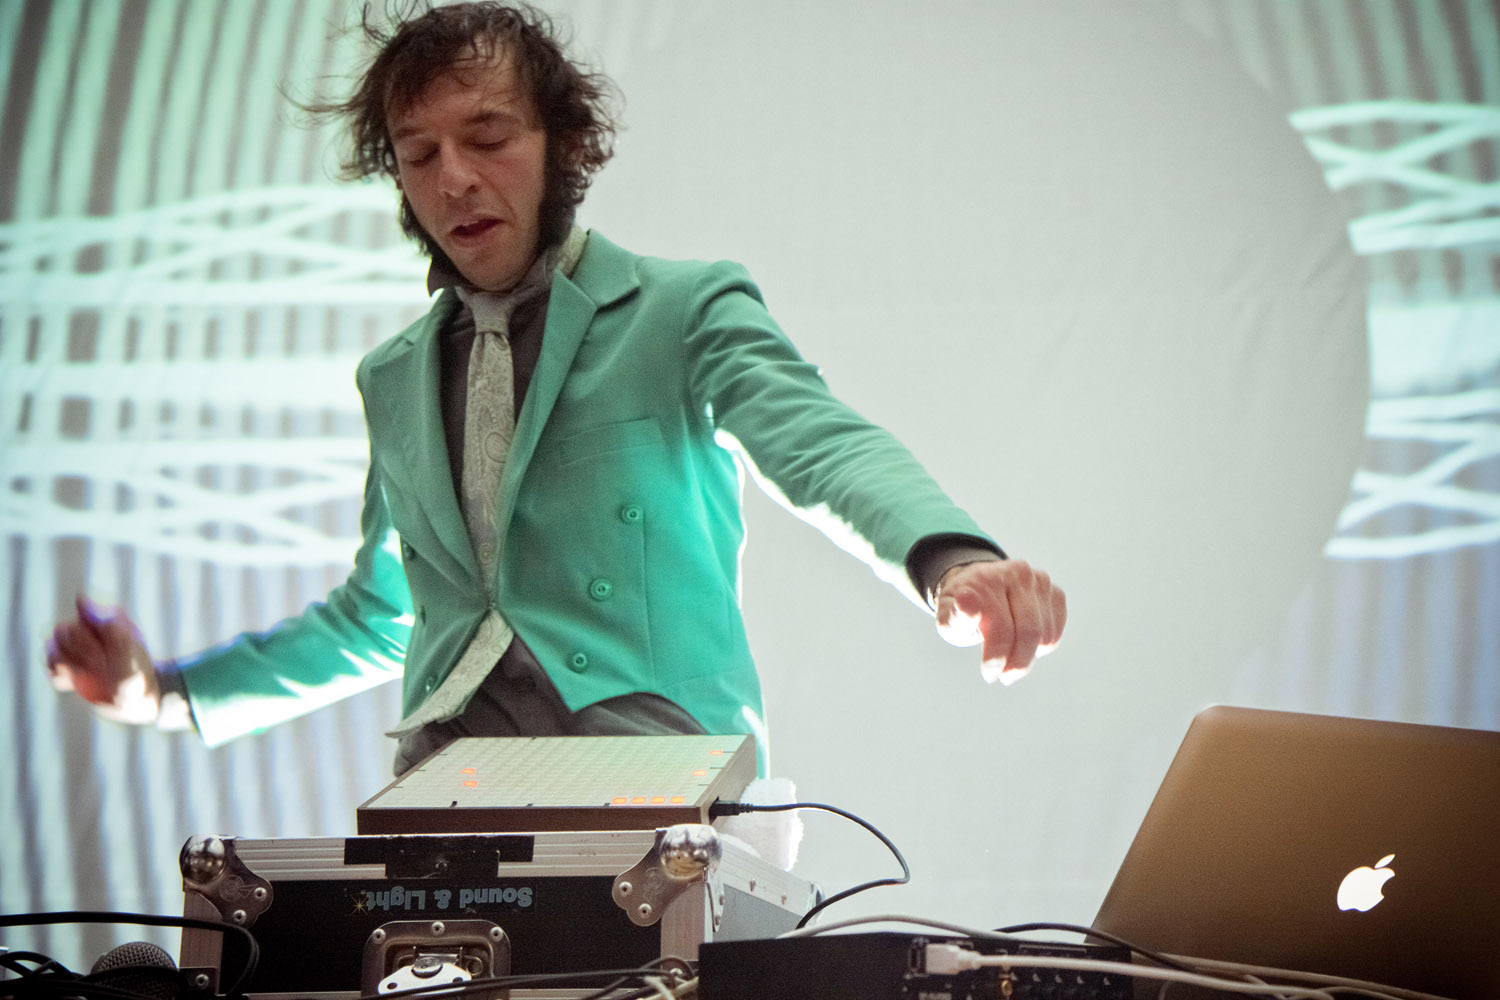 Daedelus – Stay collective